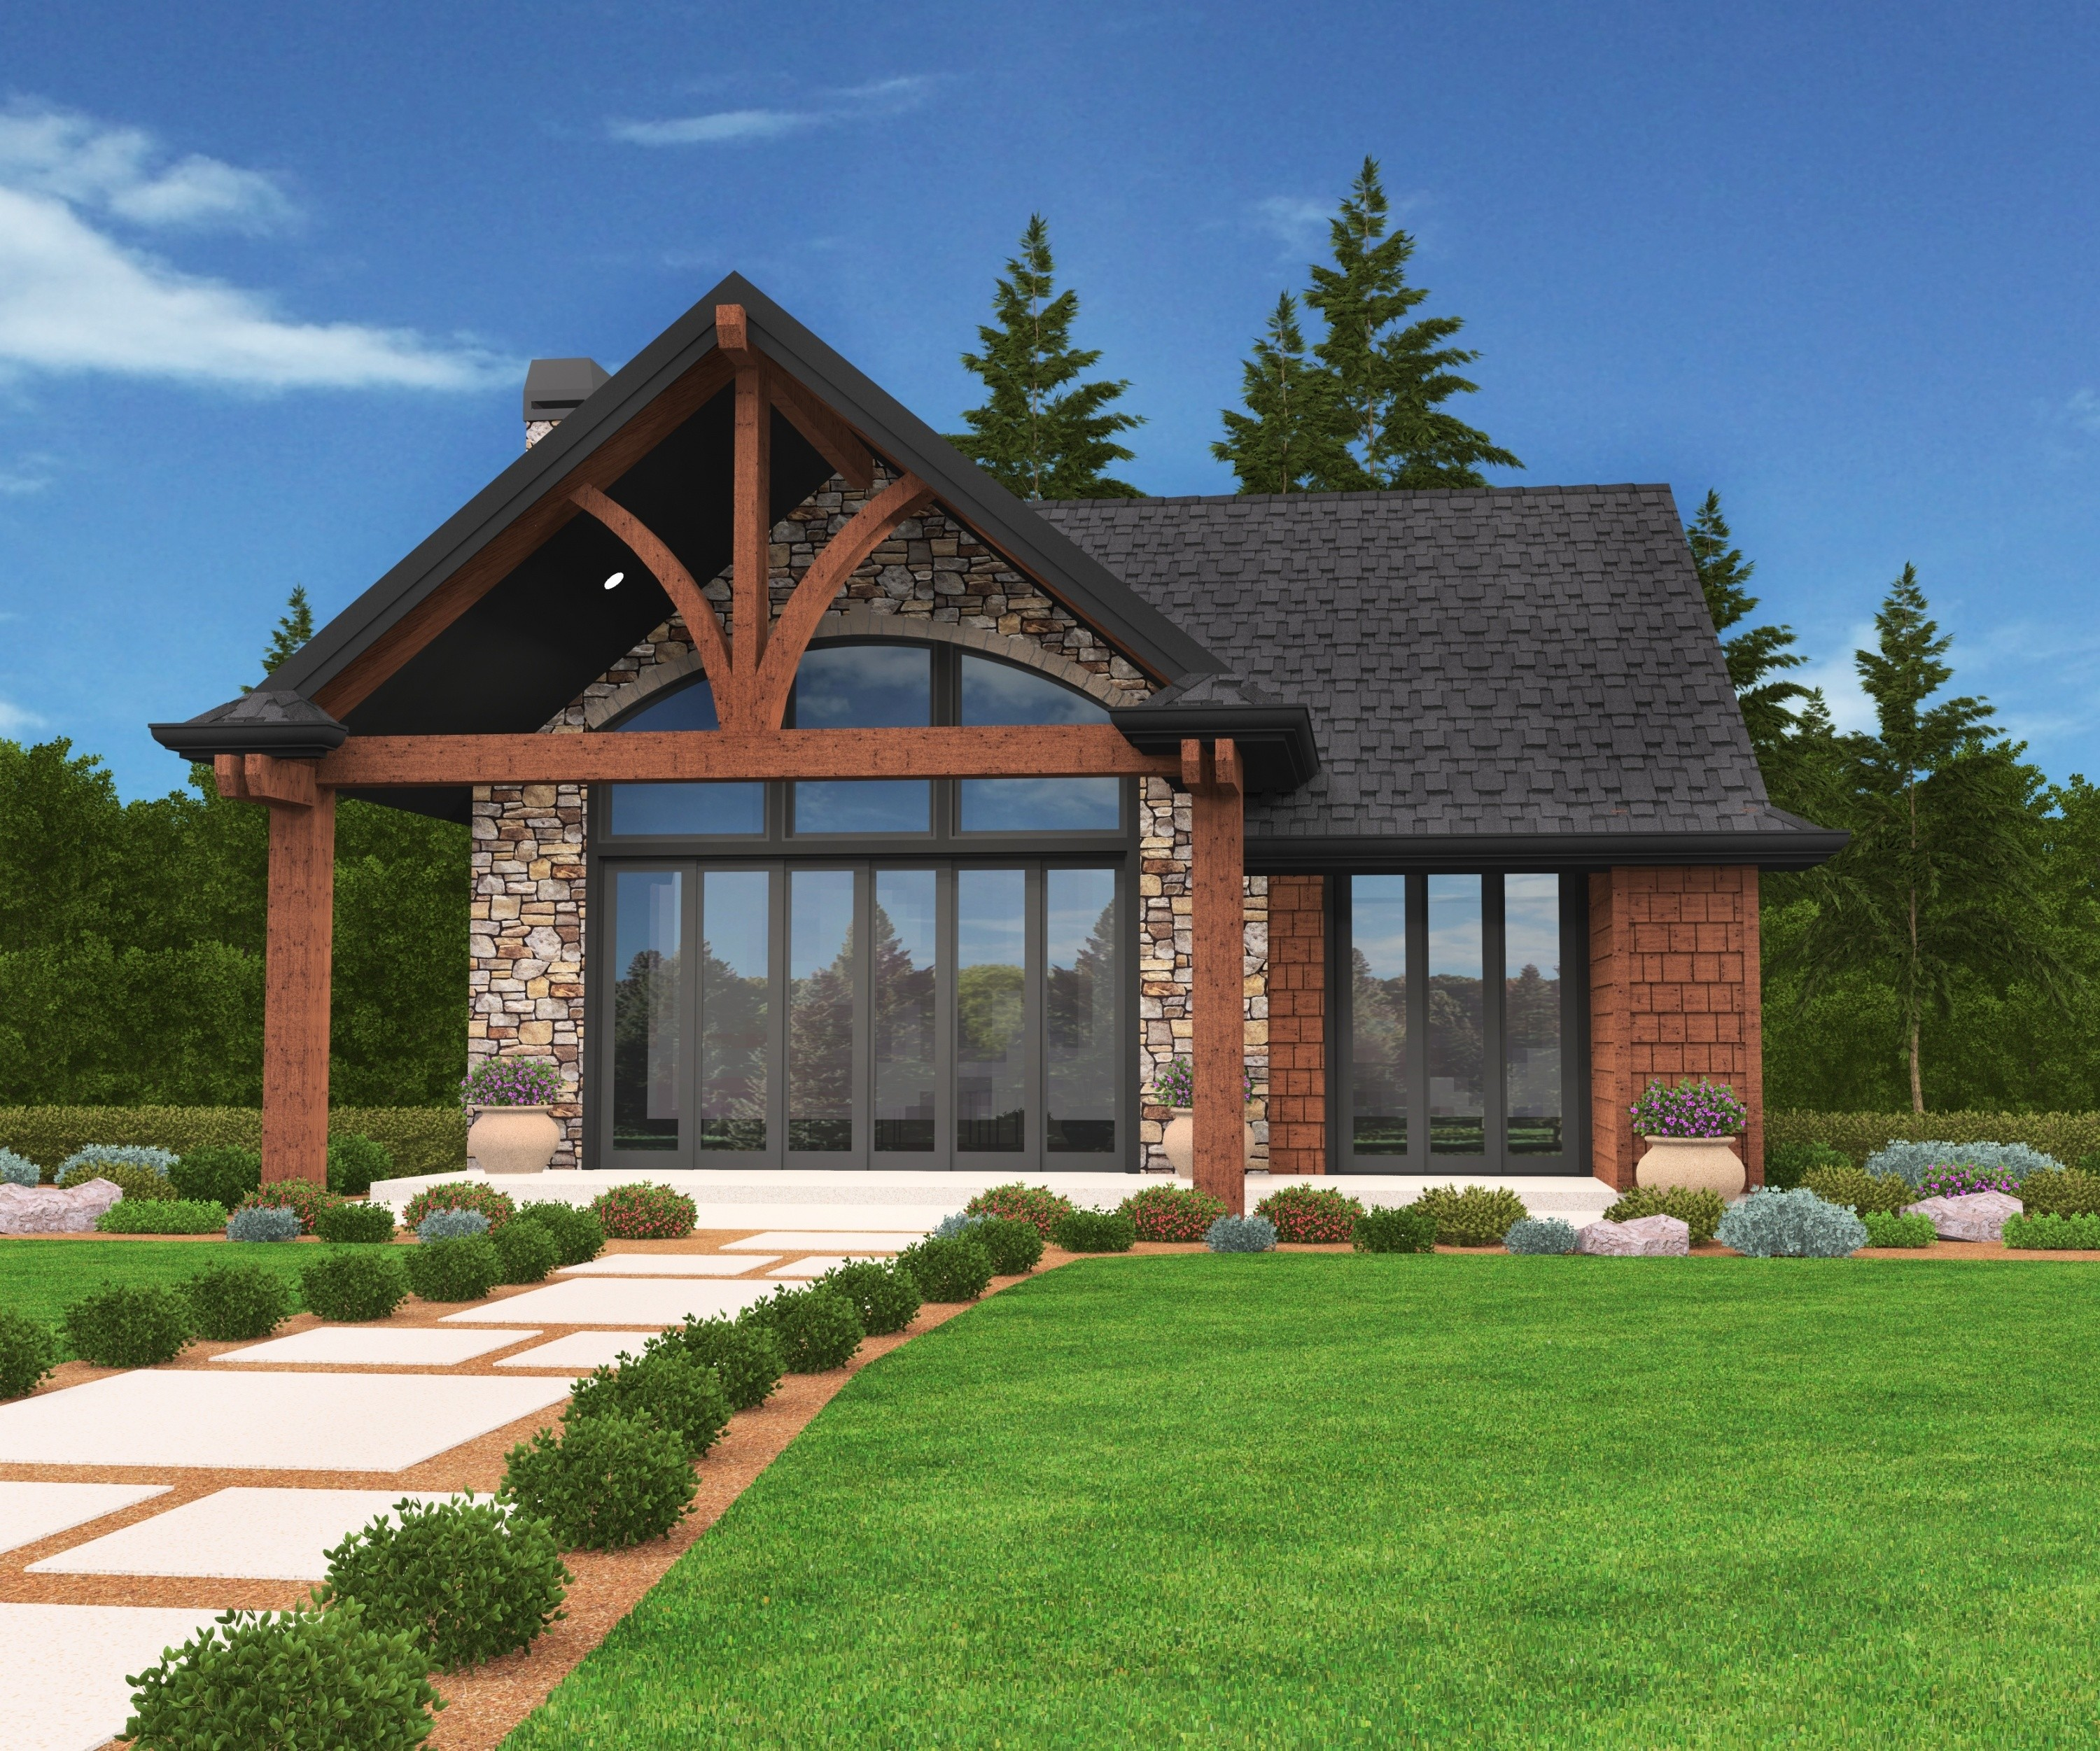 Jupiter Cabin House Plan | Small Modern Home Designs with ...